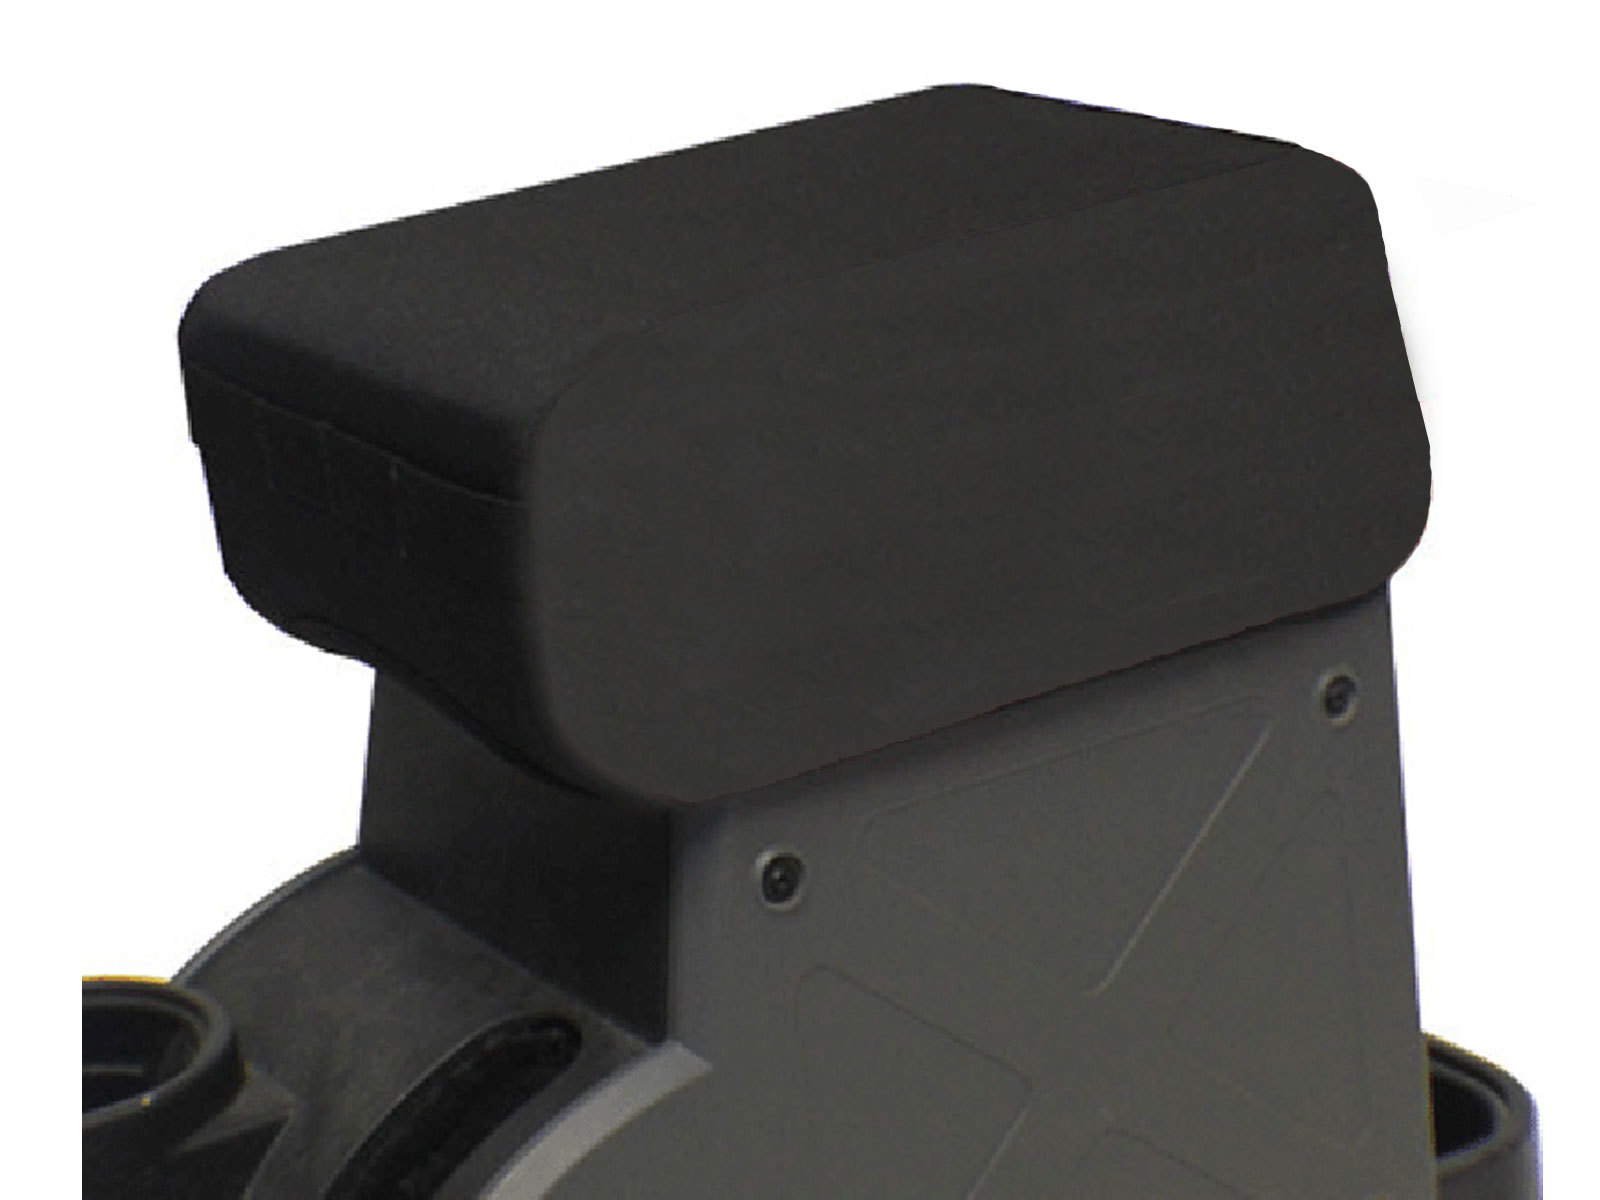 """Image of Bartact 2"""" Raised Padded Center Console Cover With Pals Webbing For Molle Attachments - Black"""